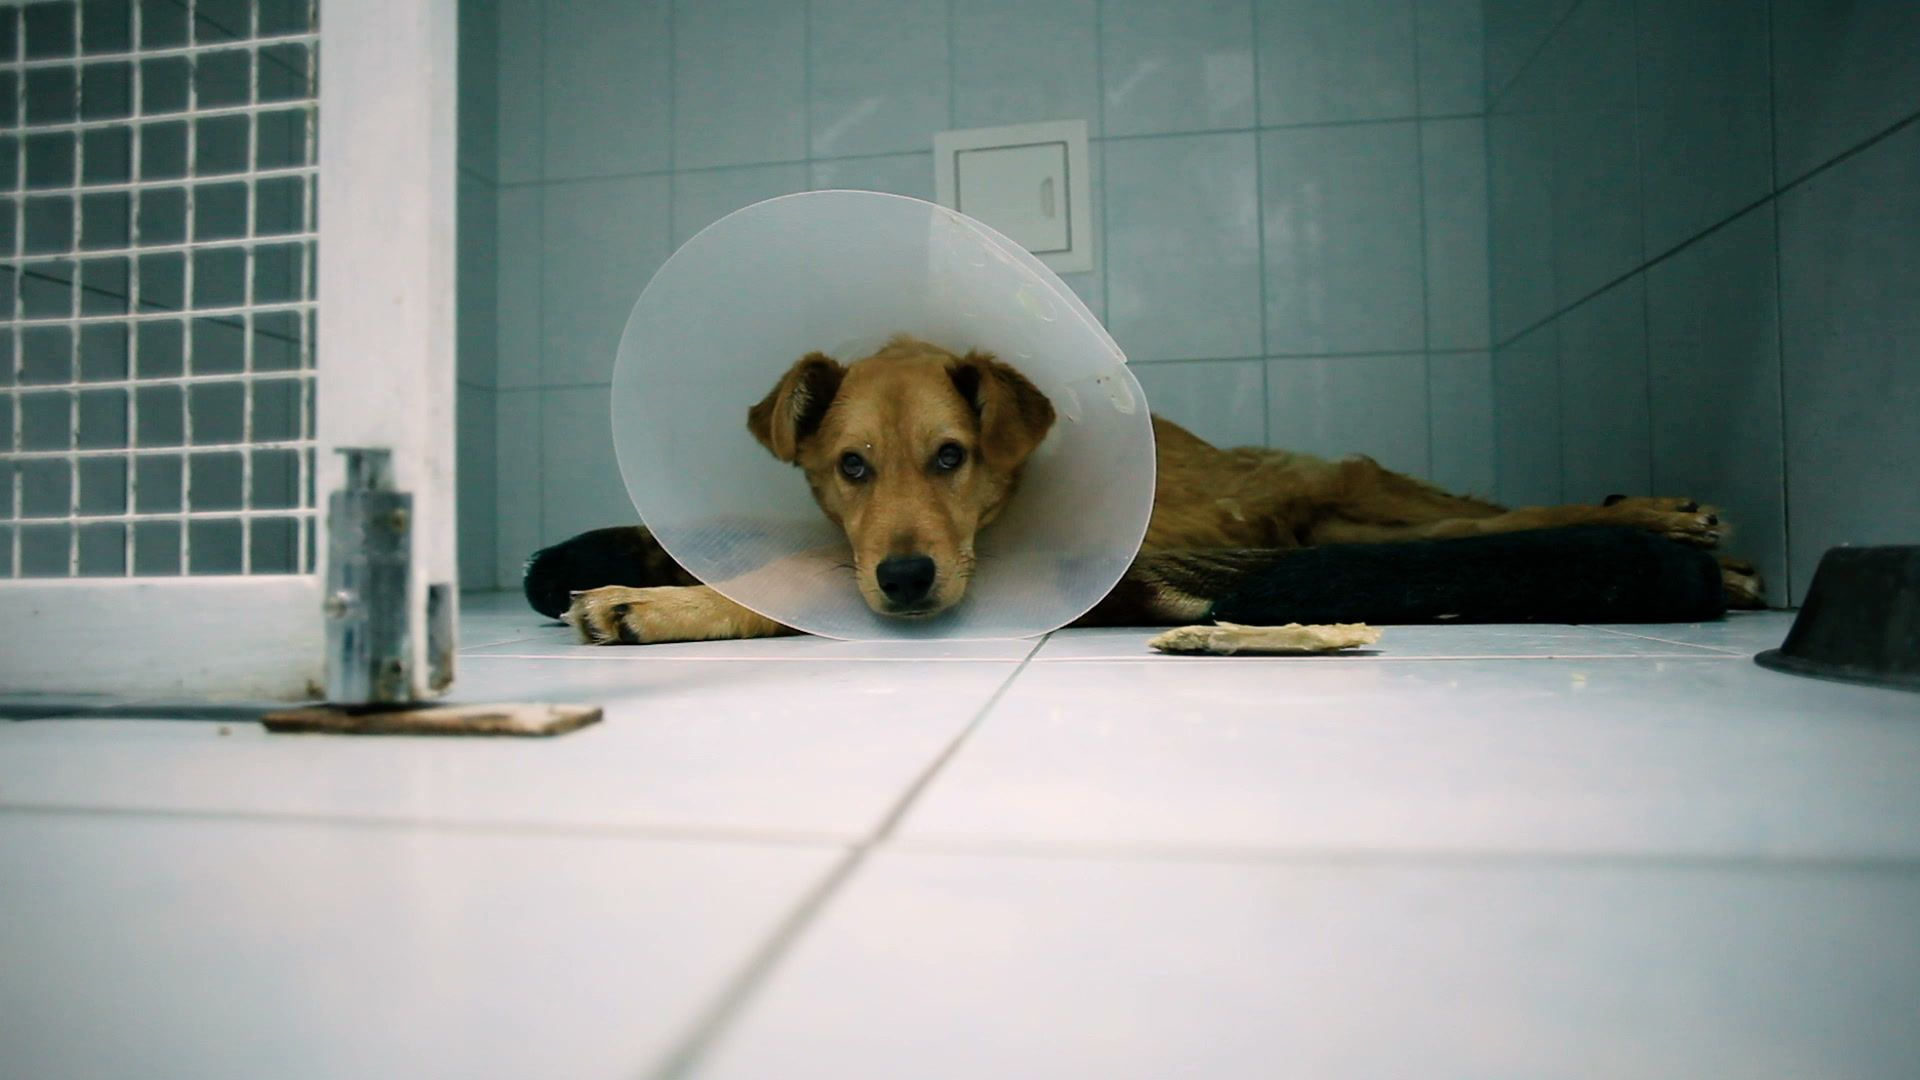 Pets. Big red mongrel dog wearing a medical collar in a